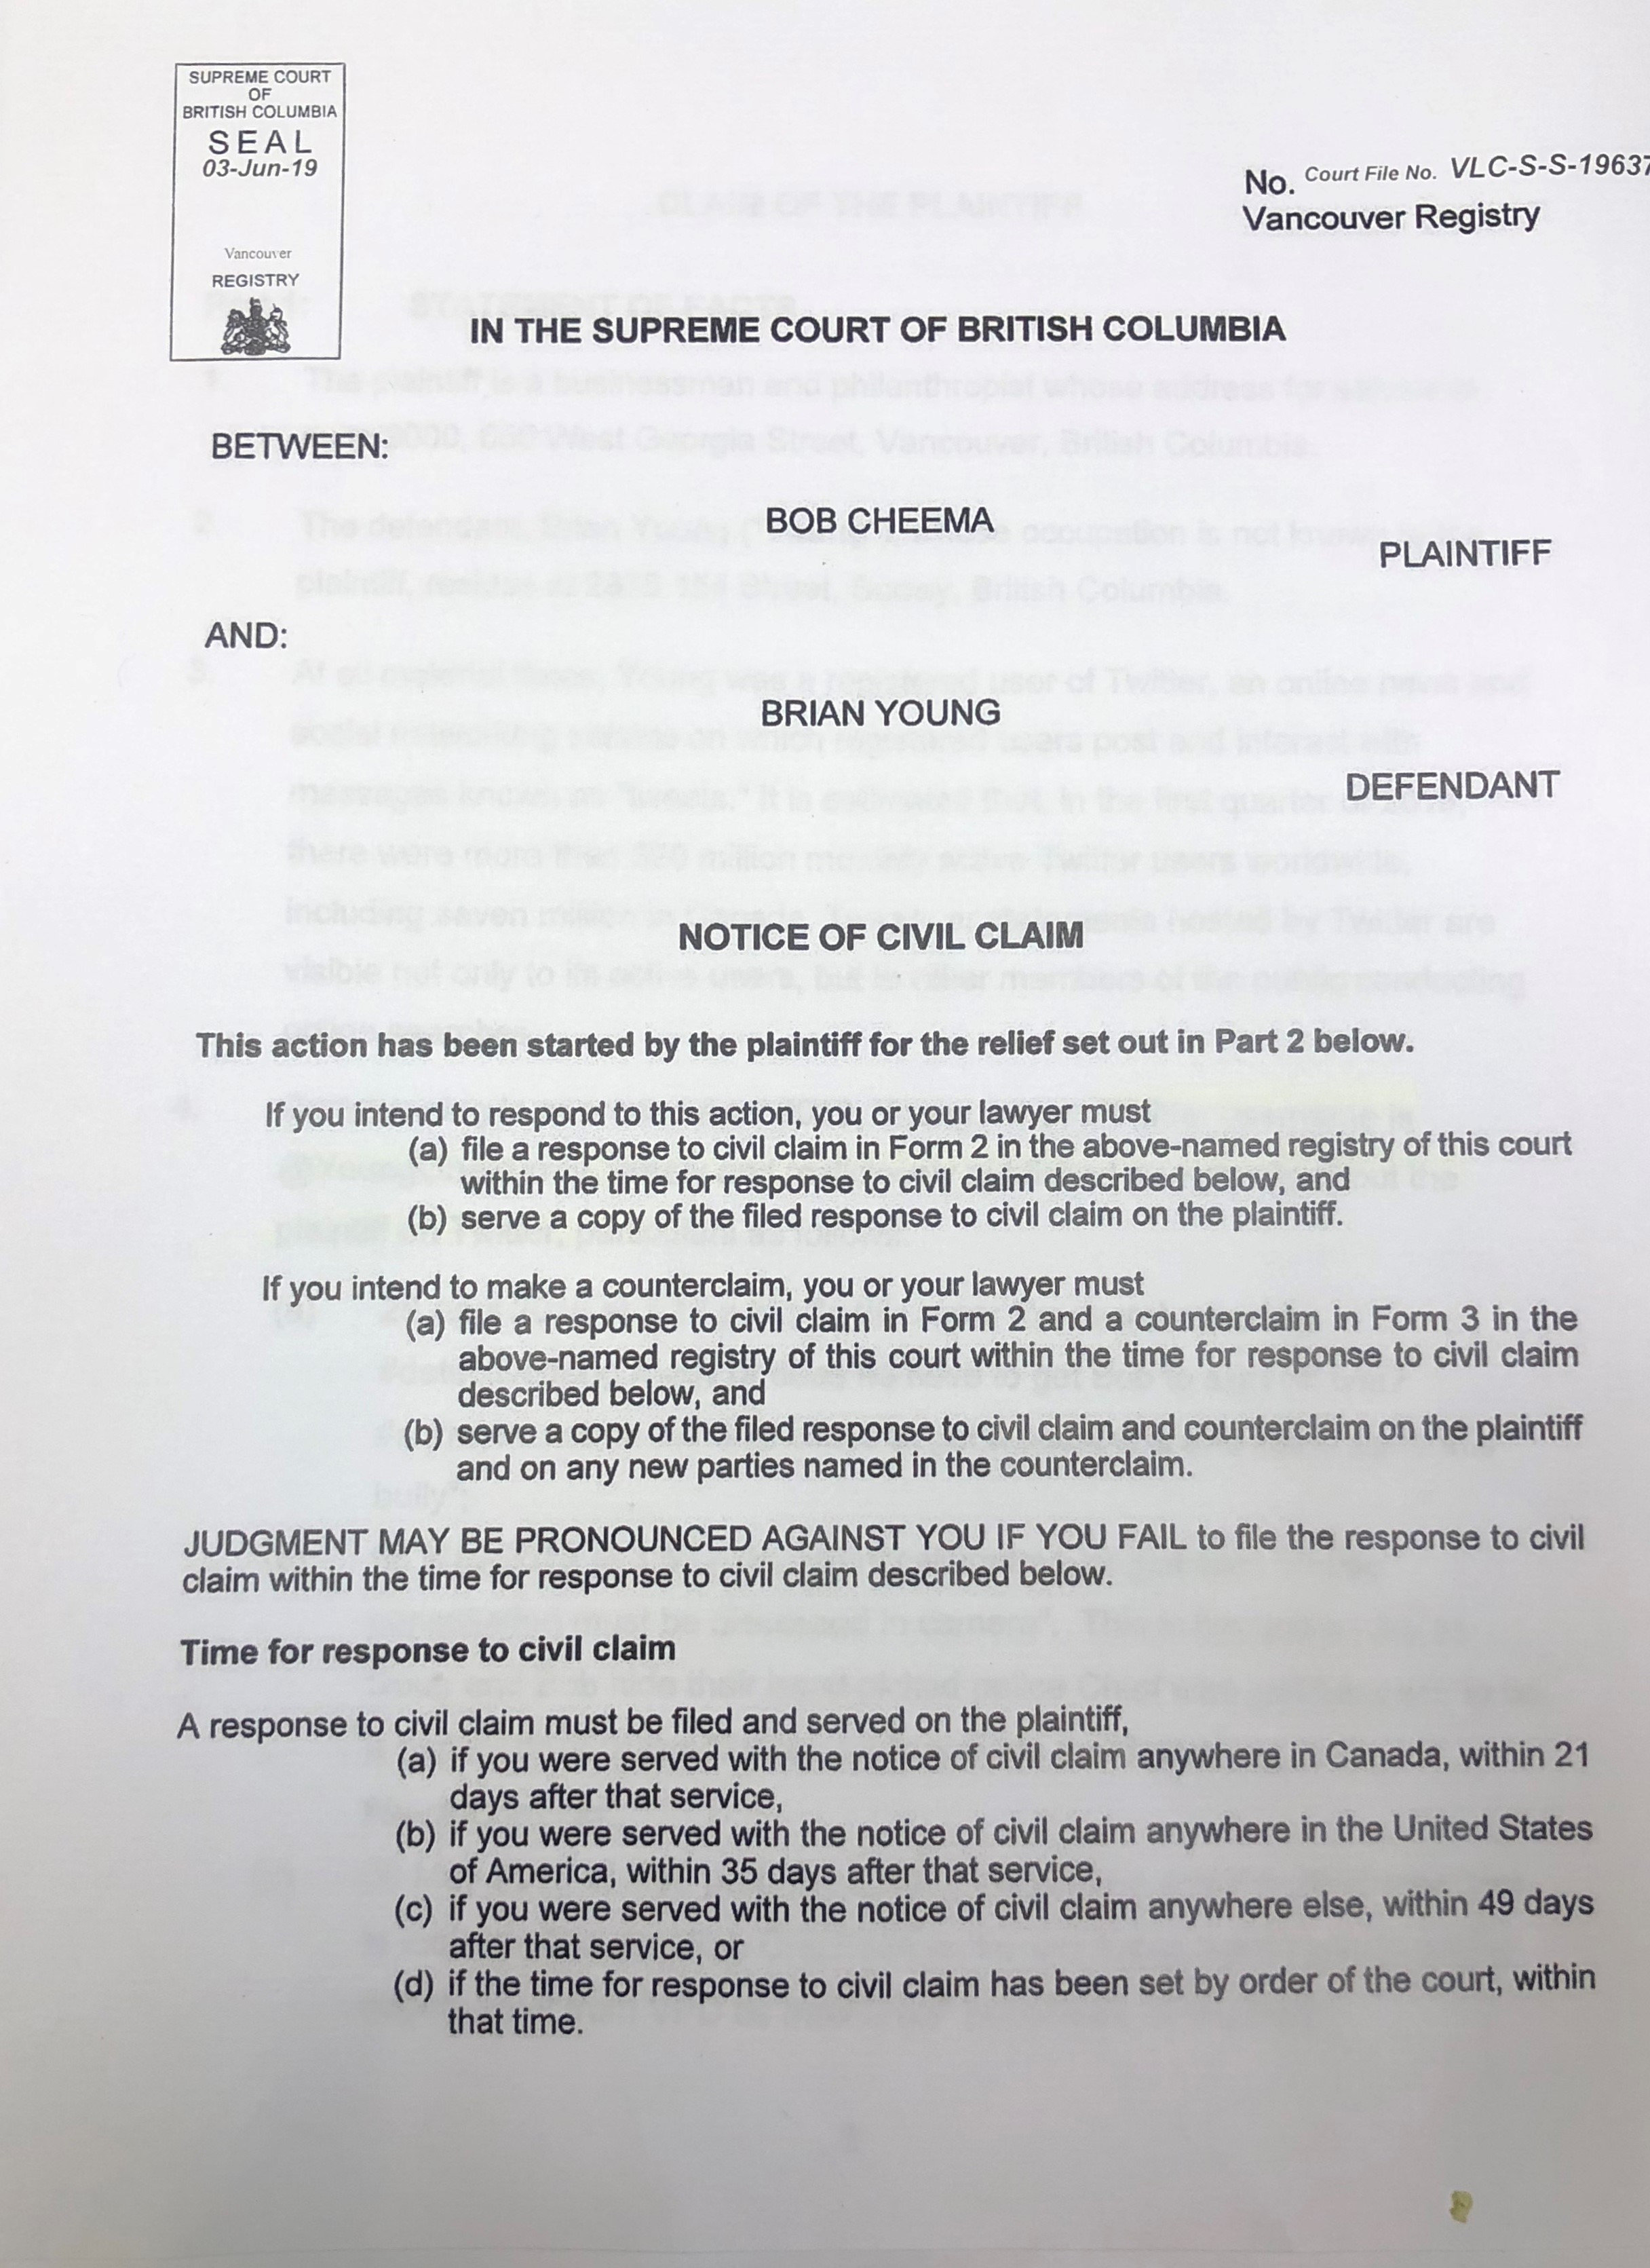 Cheema suing Young for defamation